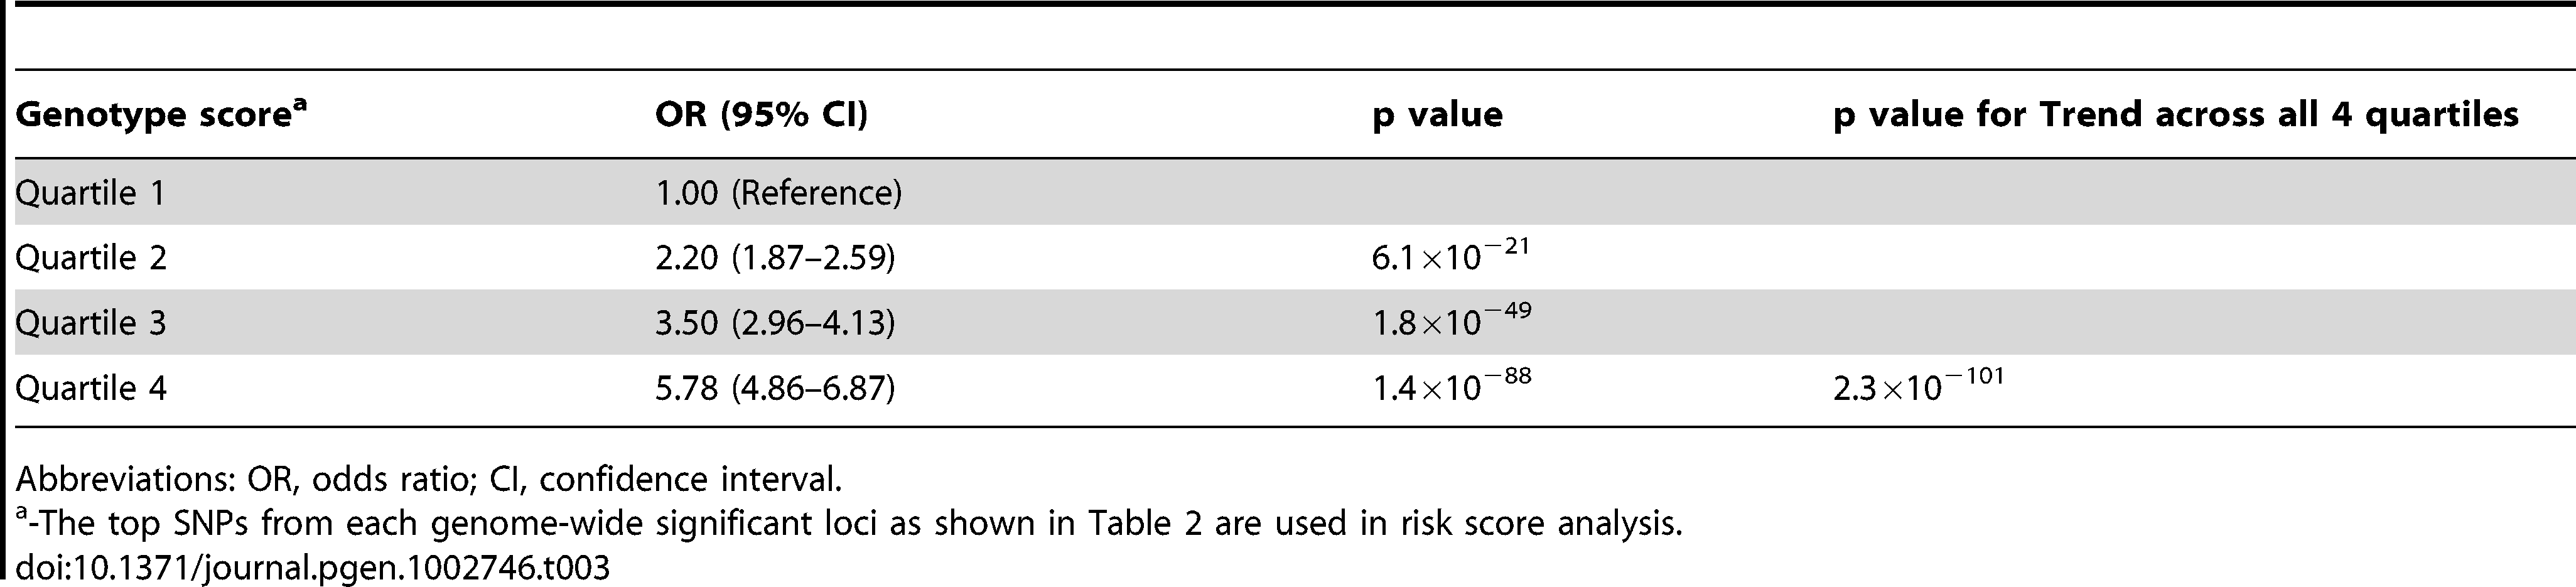 Genotype score associated with the risk of androgenetic alopecia.